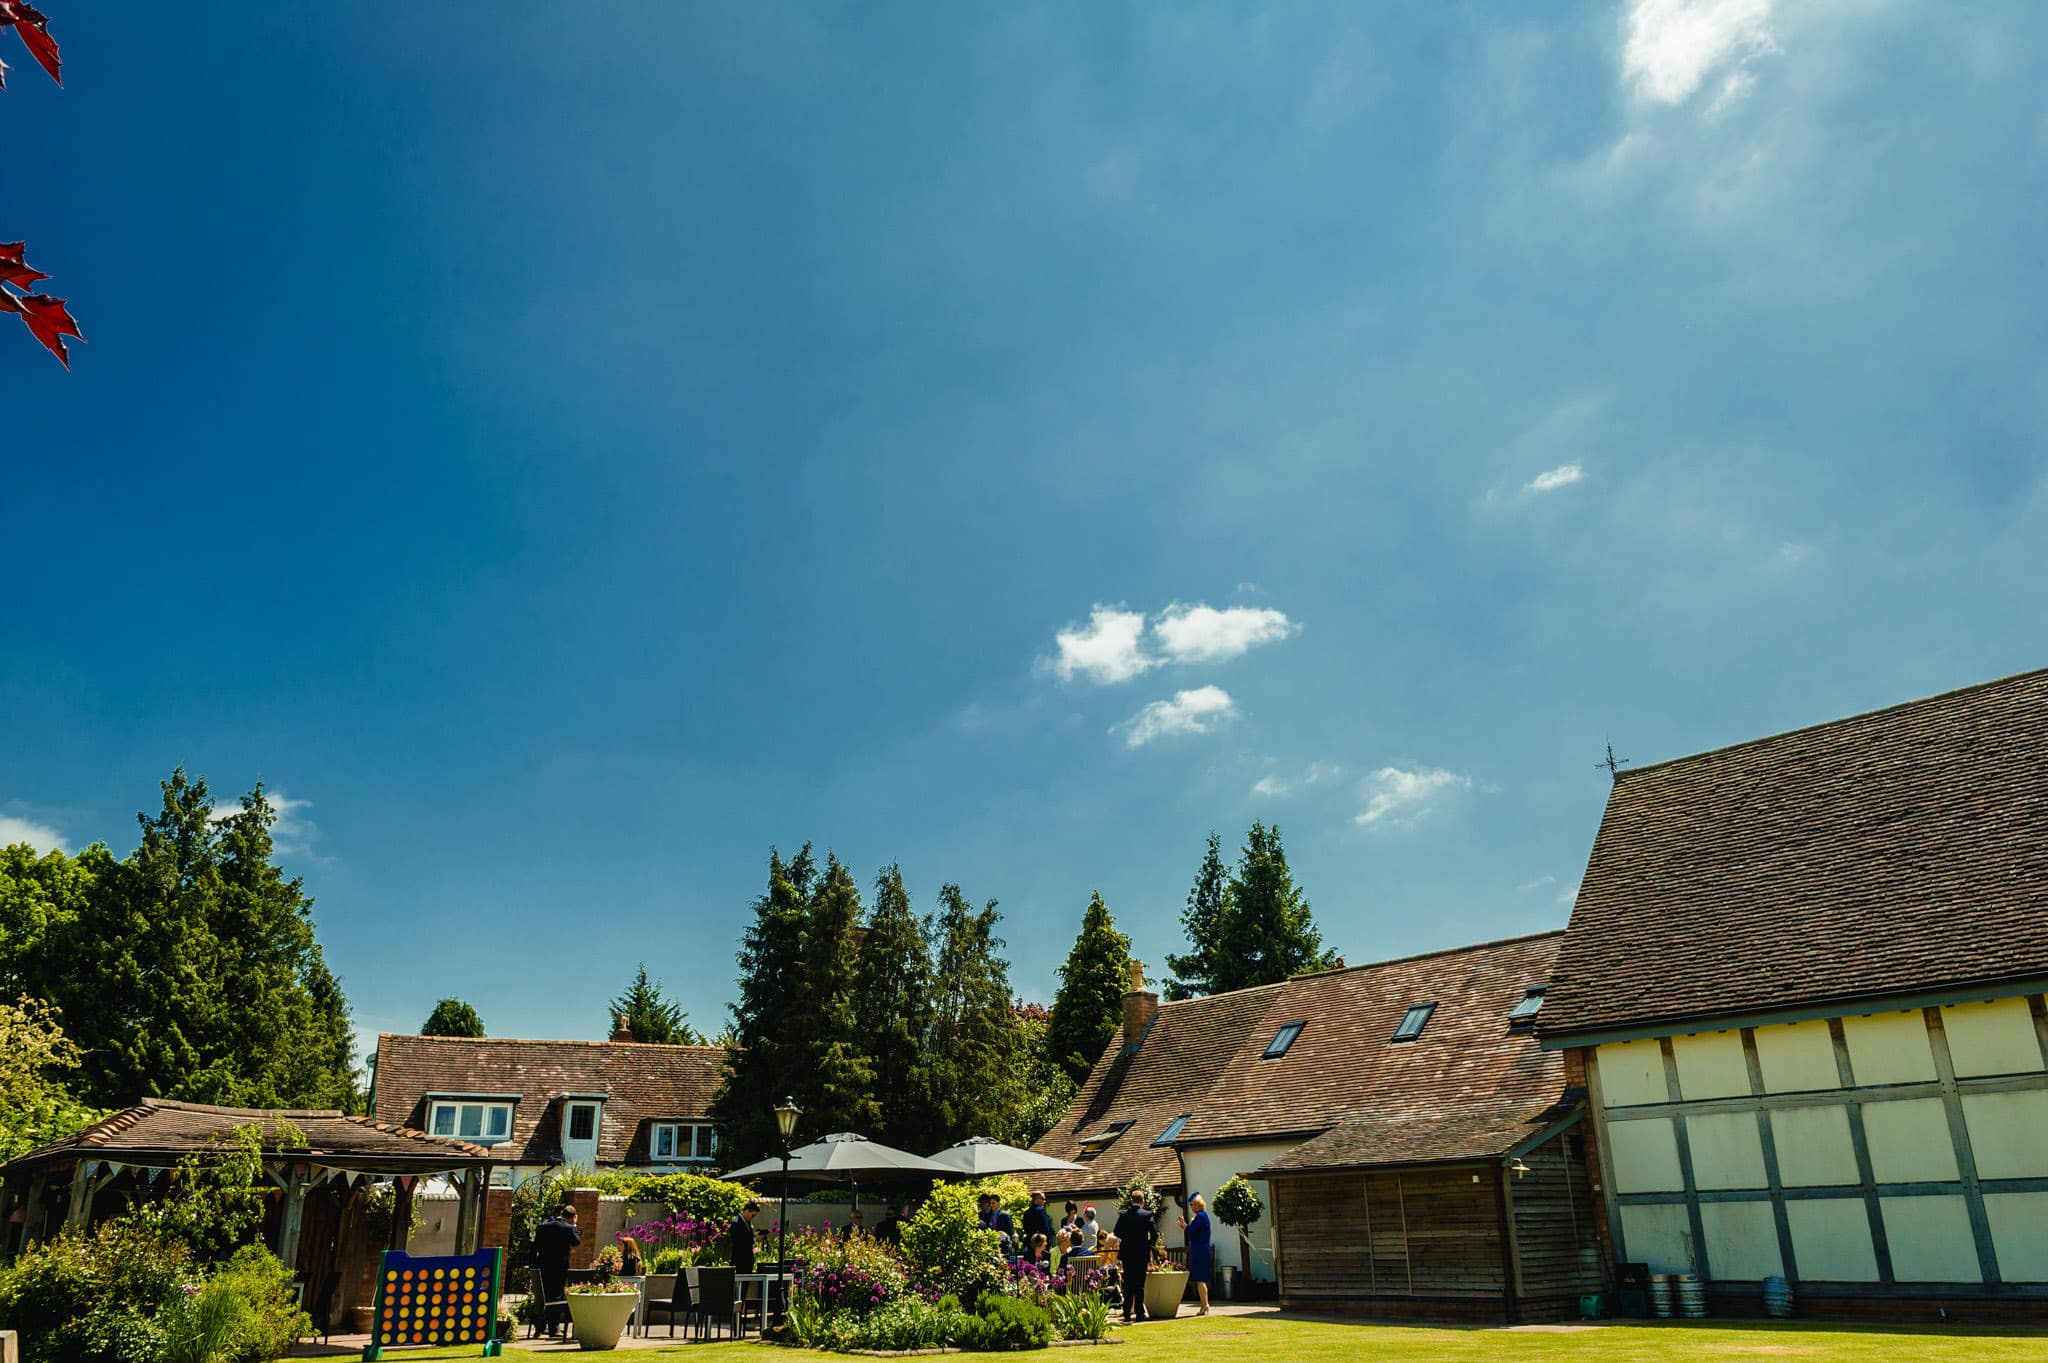 wedding at redhouse barn 56 - Wedding at Redhouse Barn in Stoke Prior, Worcestershire